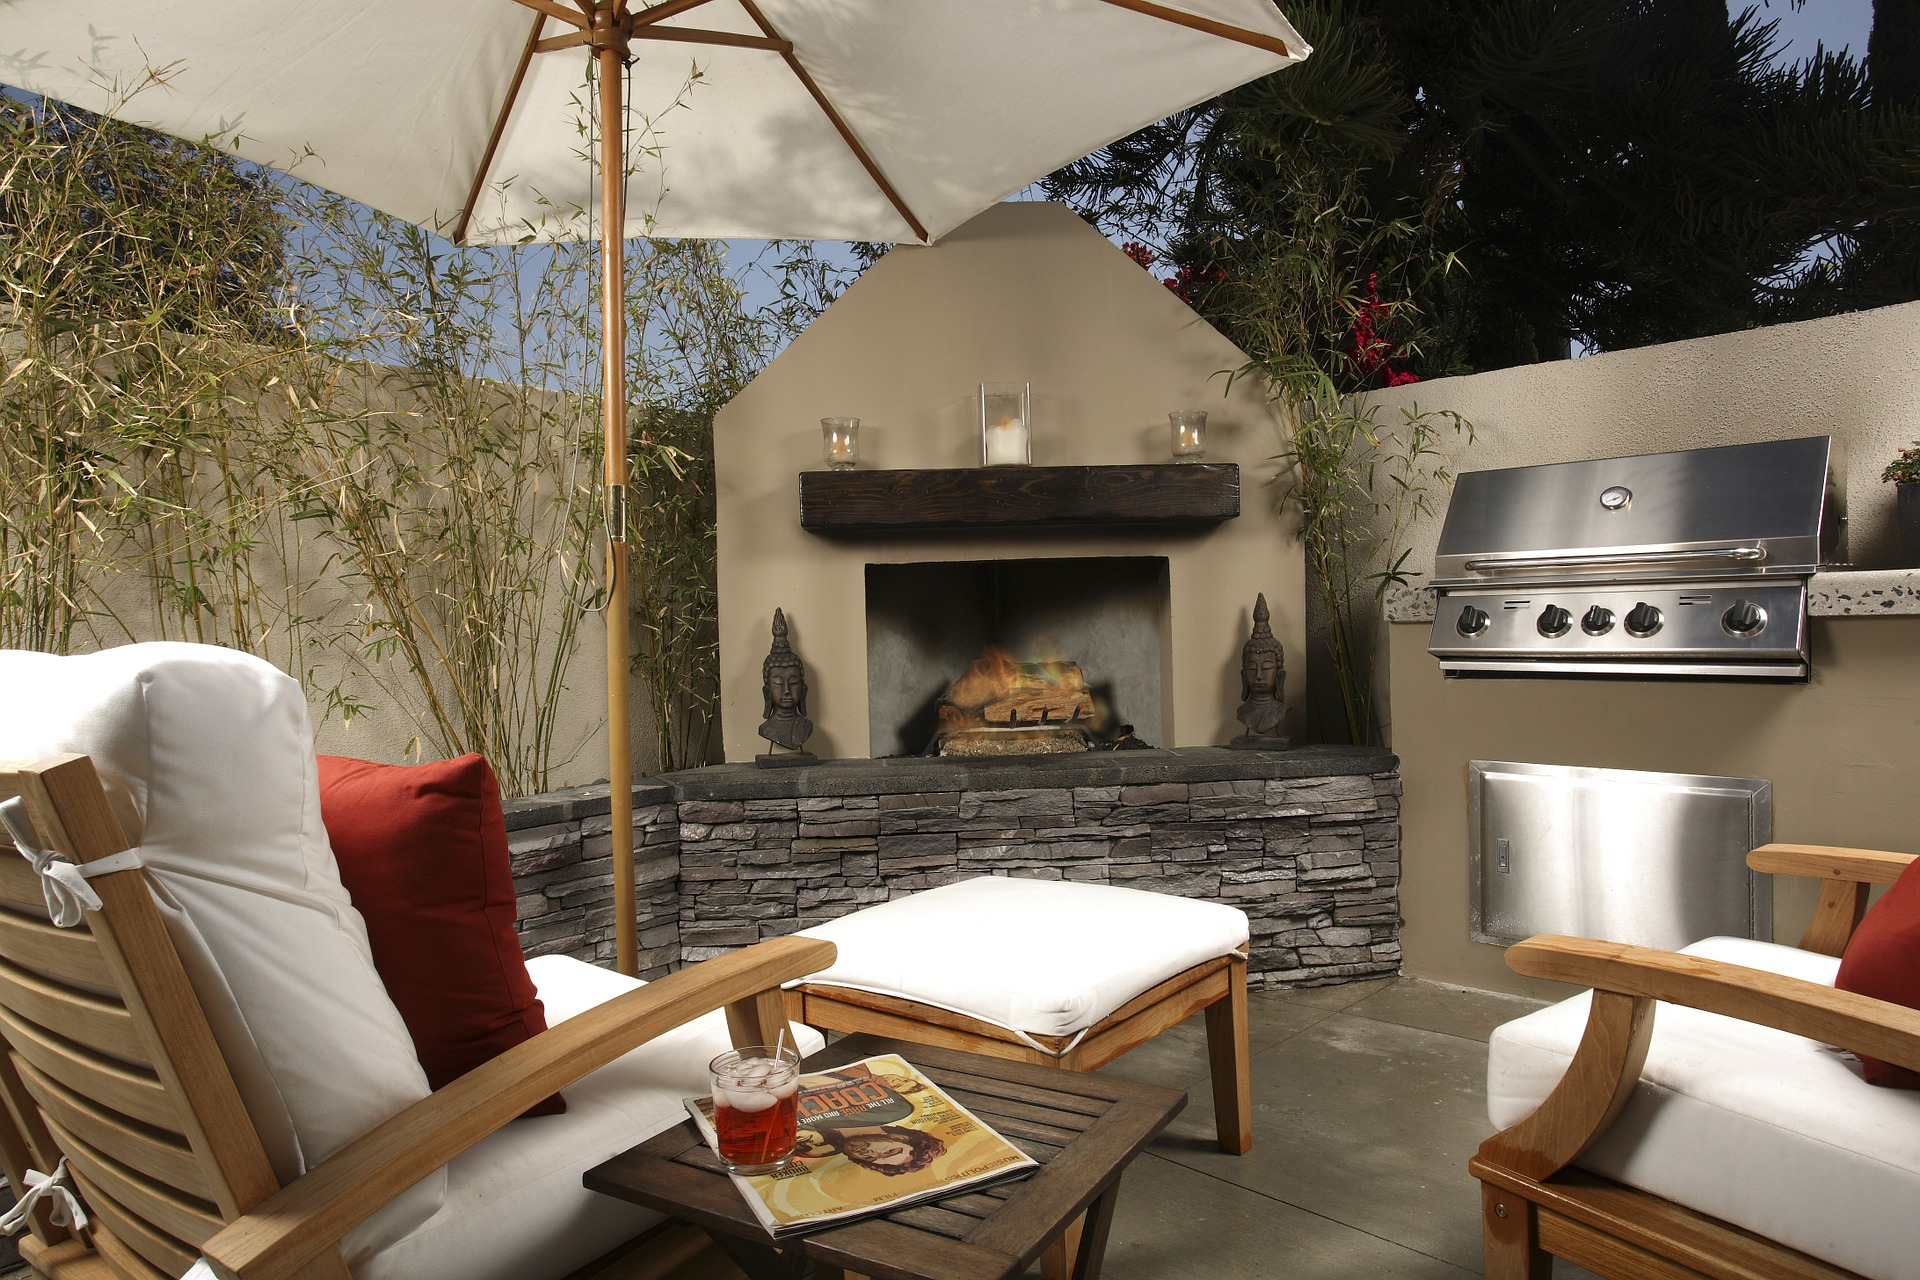 How to Make Your Patio Ready for the Summer